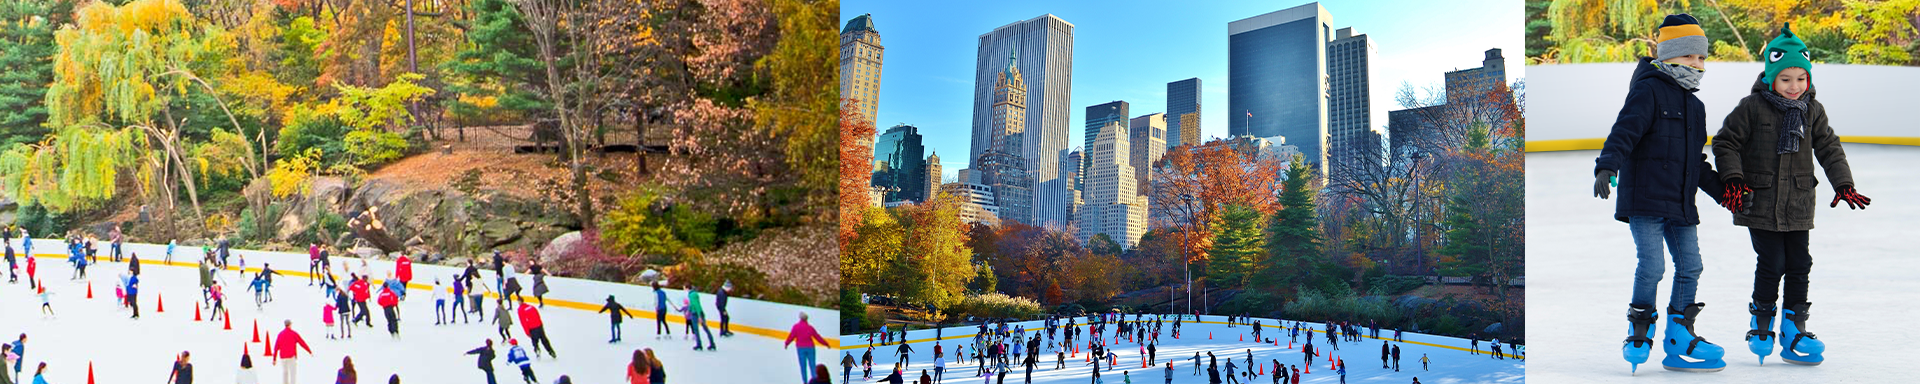 Ice-Skating in Central Park!